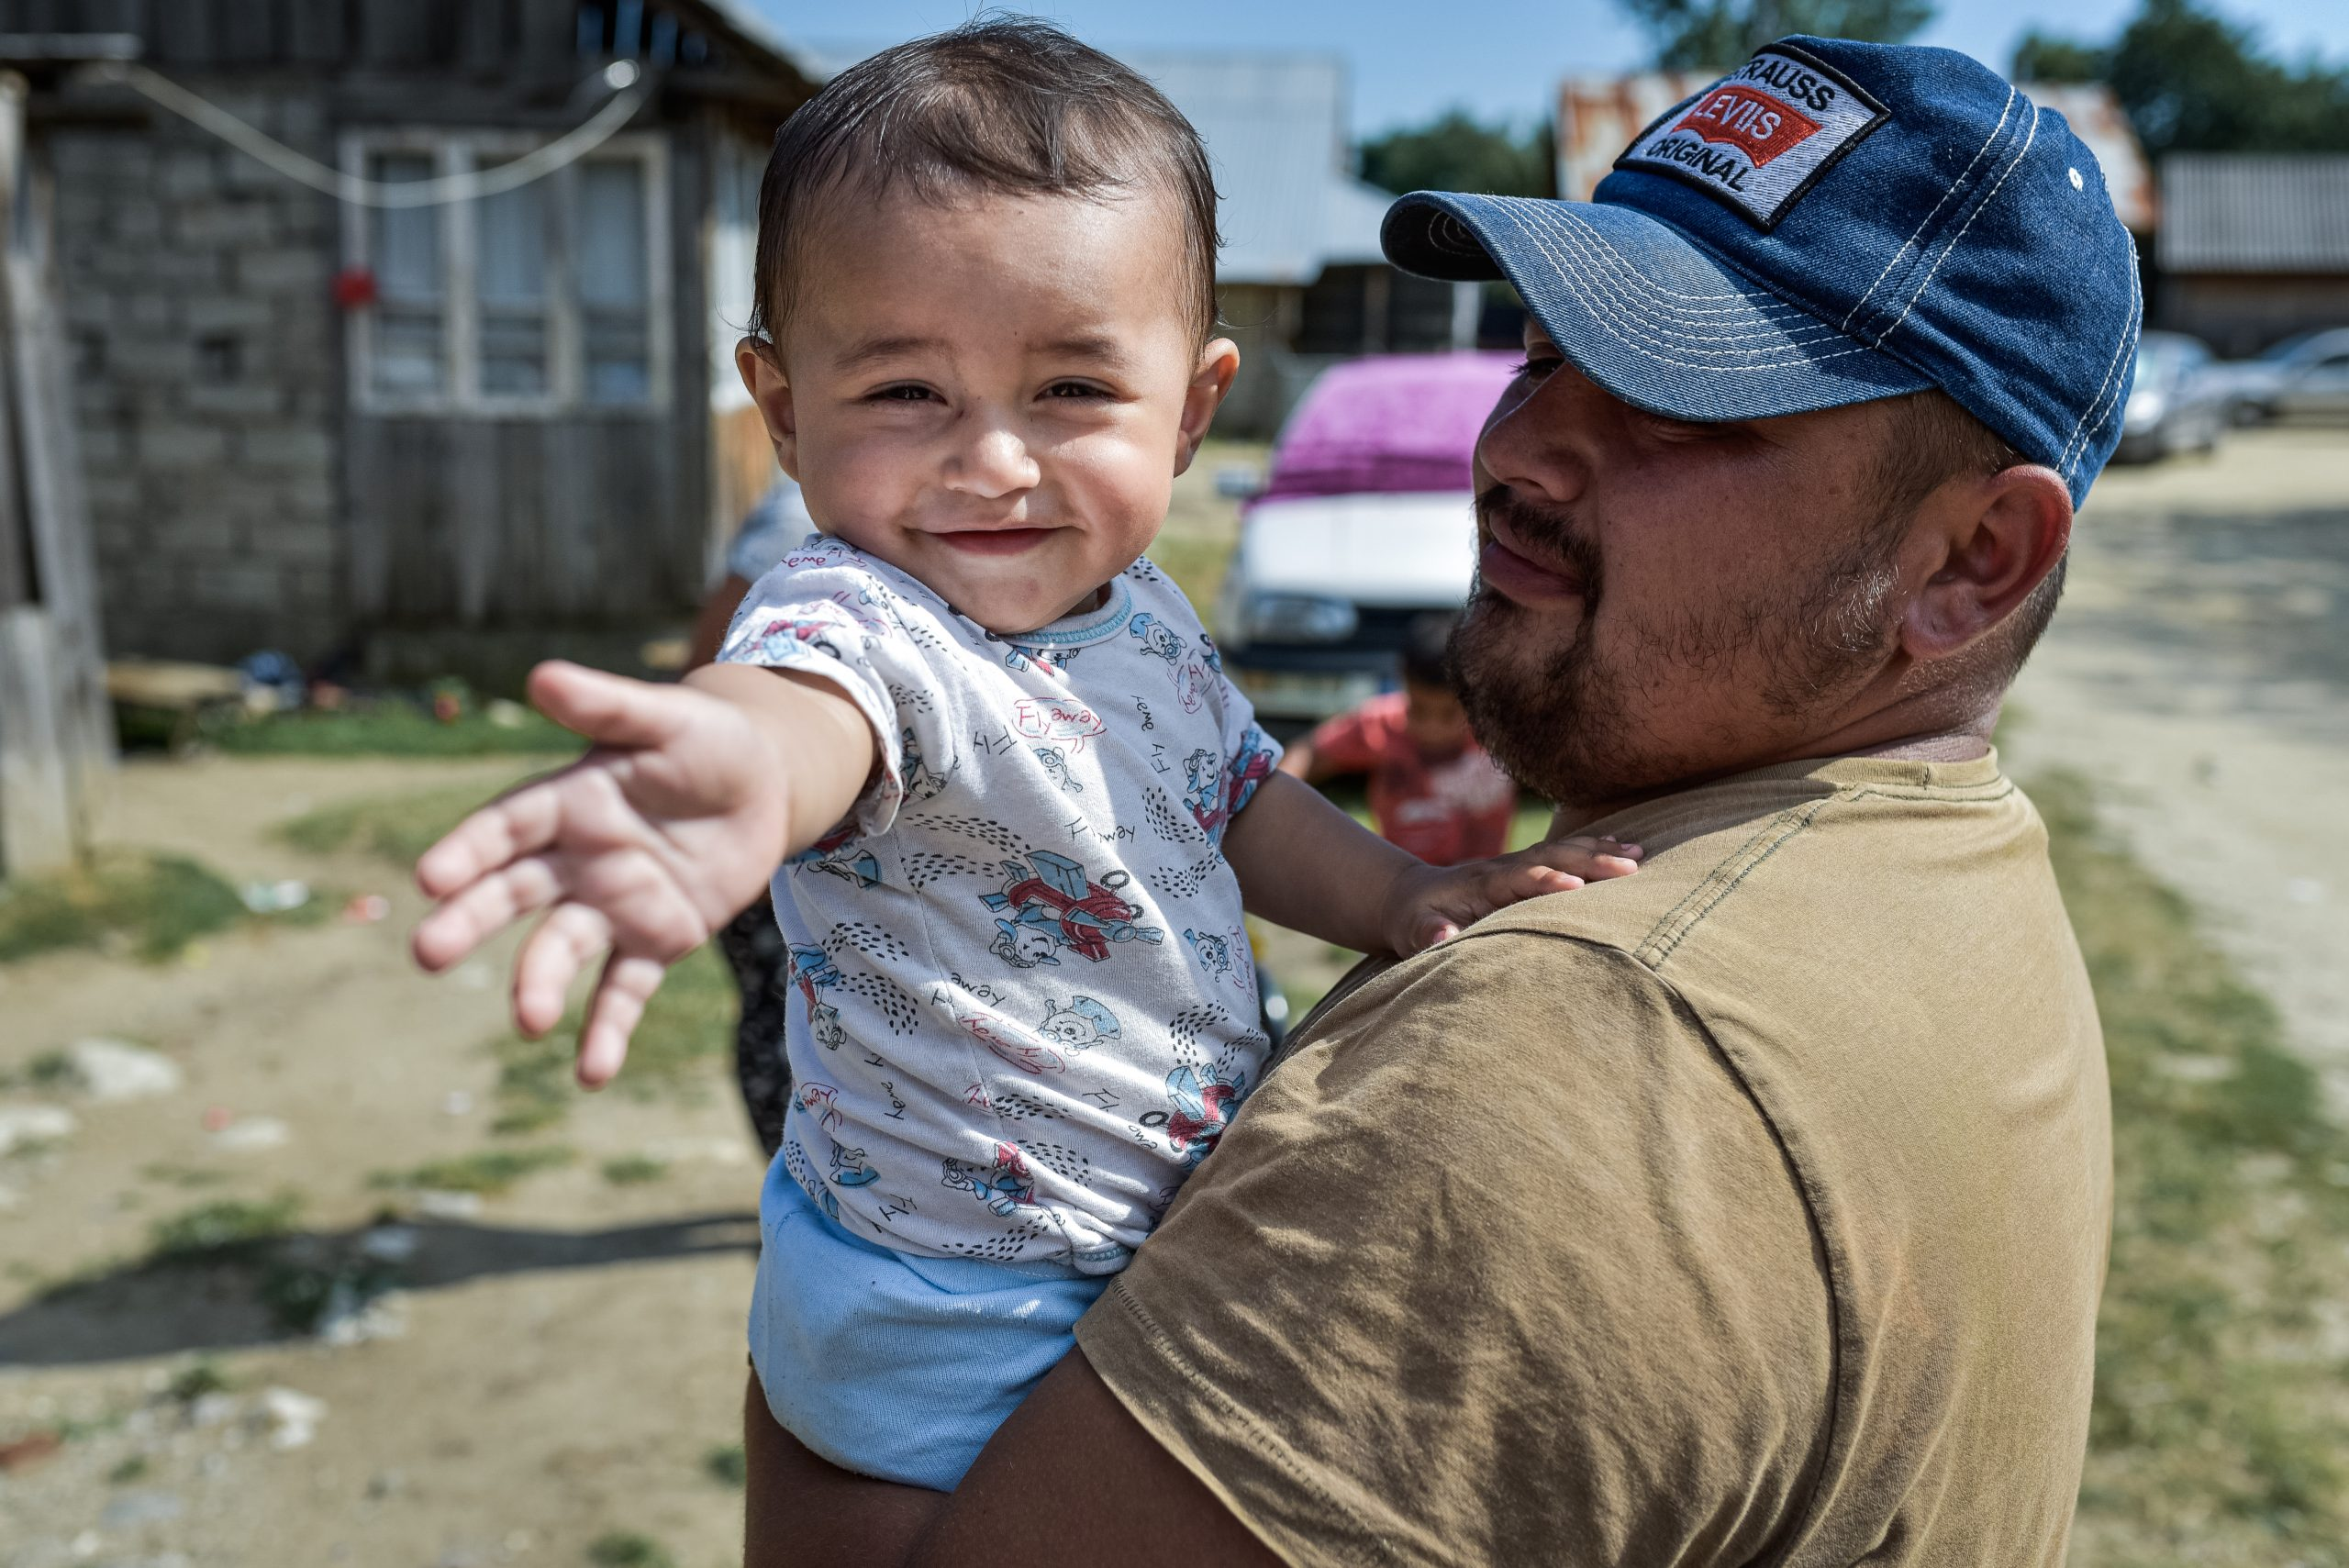 Vaideeni, Romania: Stefan and his father, who built their home as part of Big Build 2019 in Romania.